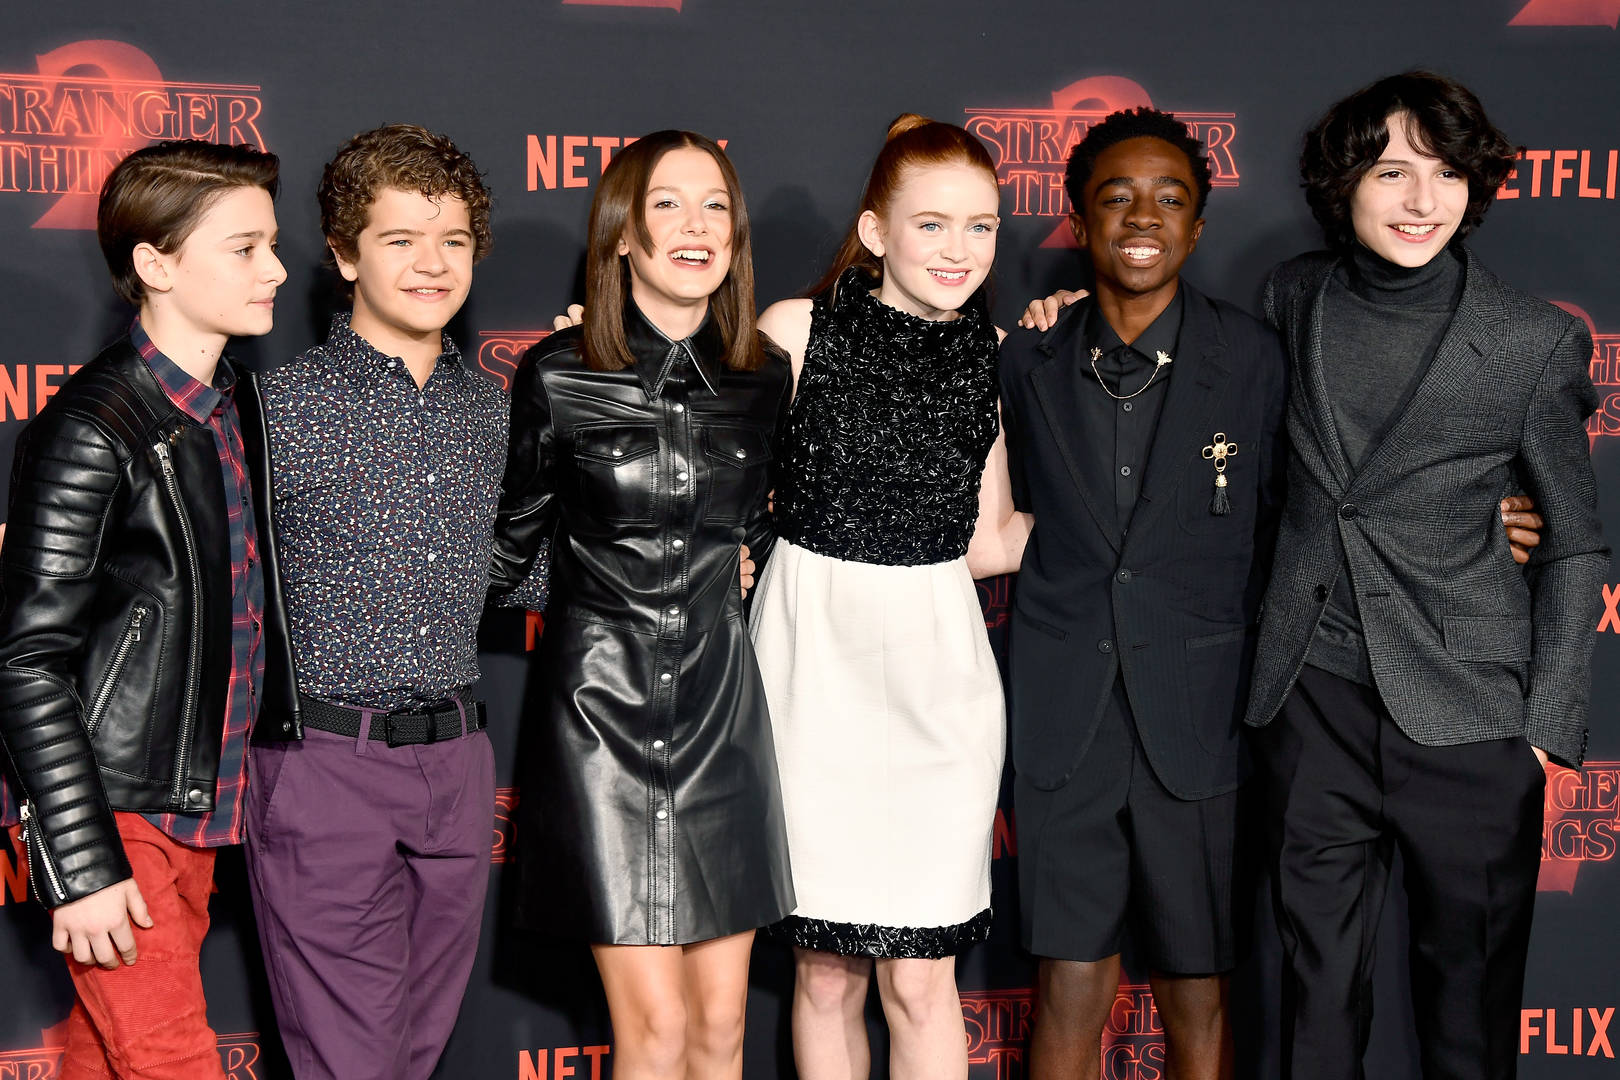 Stranger Things Big Poppa Notorious B.I.G. Biggie Smalls Carpool Karaoke Millie Bobby Brown Finn Wolfhard Caleb McLaughlin Gaten Matarazzo Noah Schnapp Sadie Sink cast rap sing